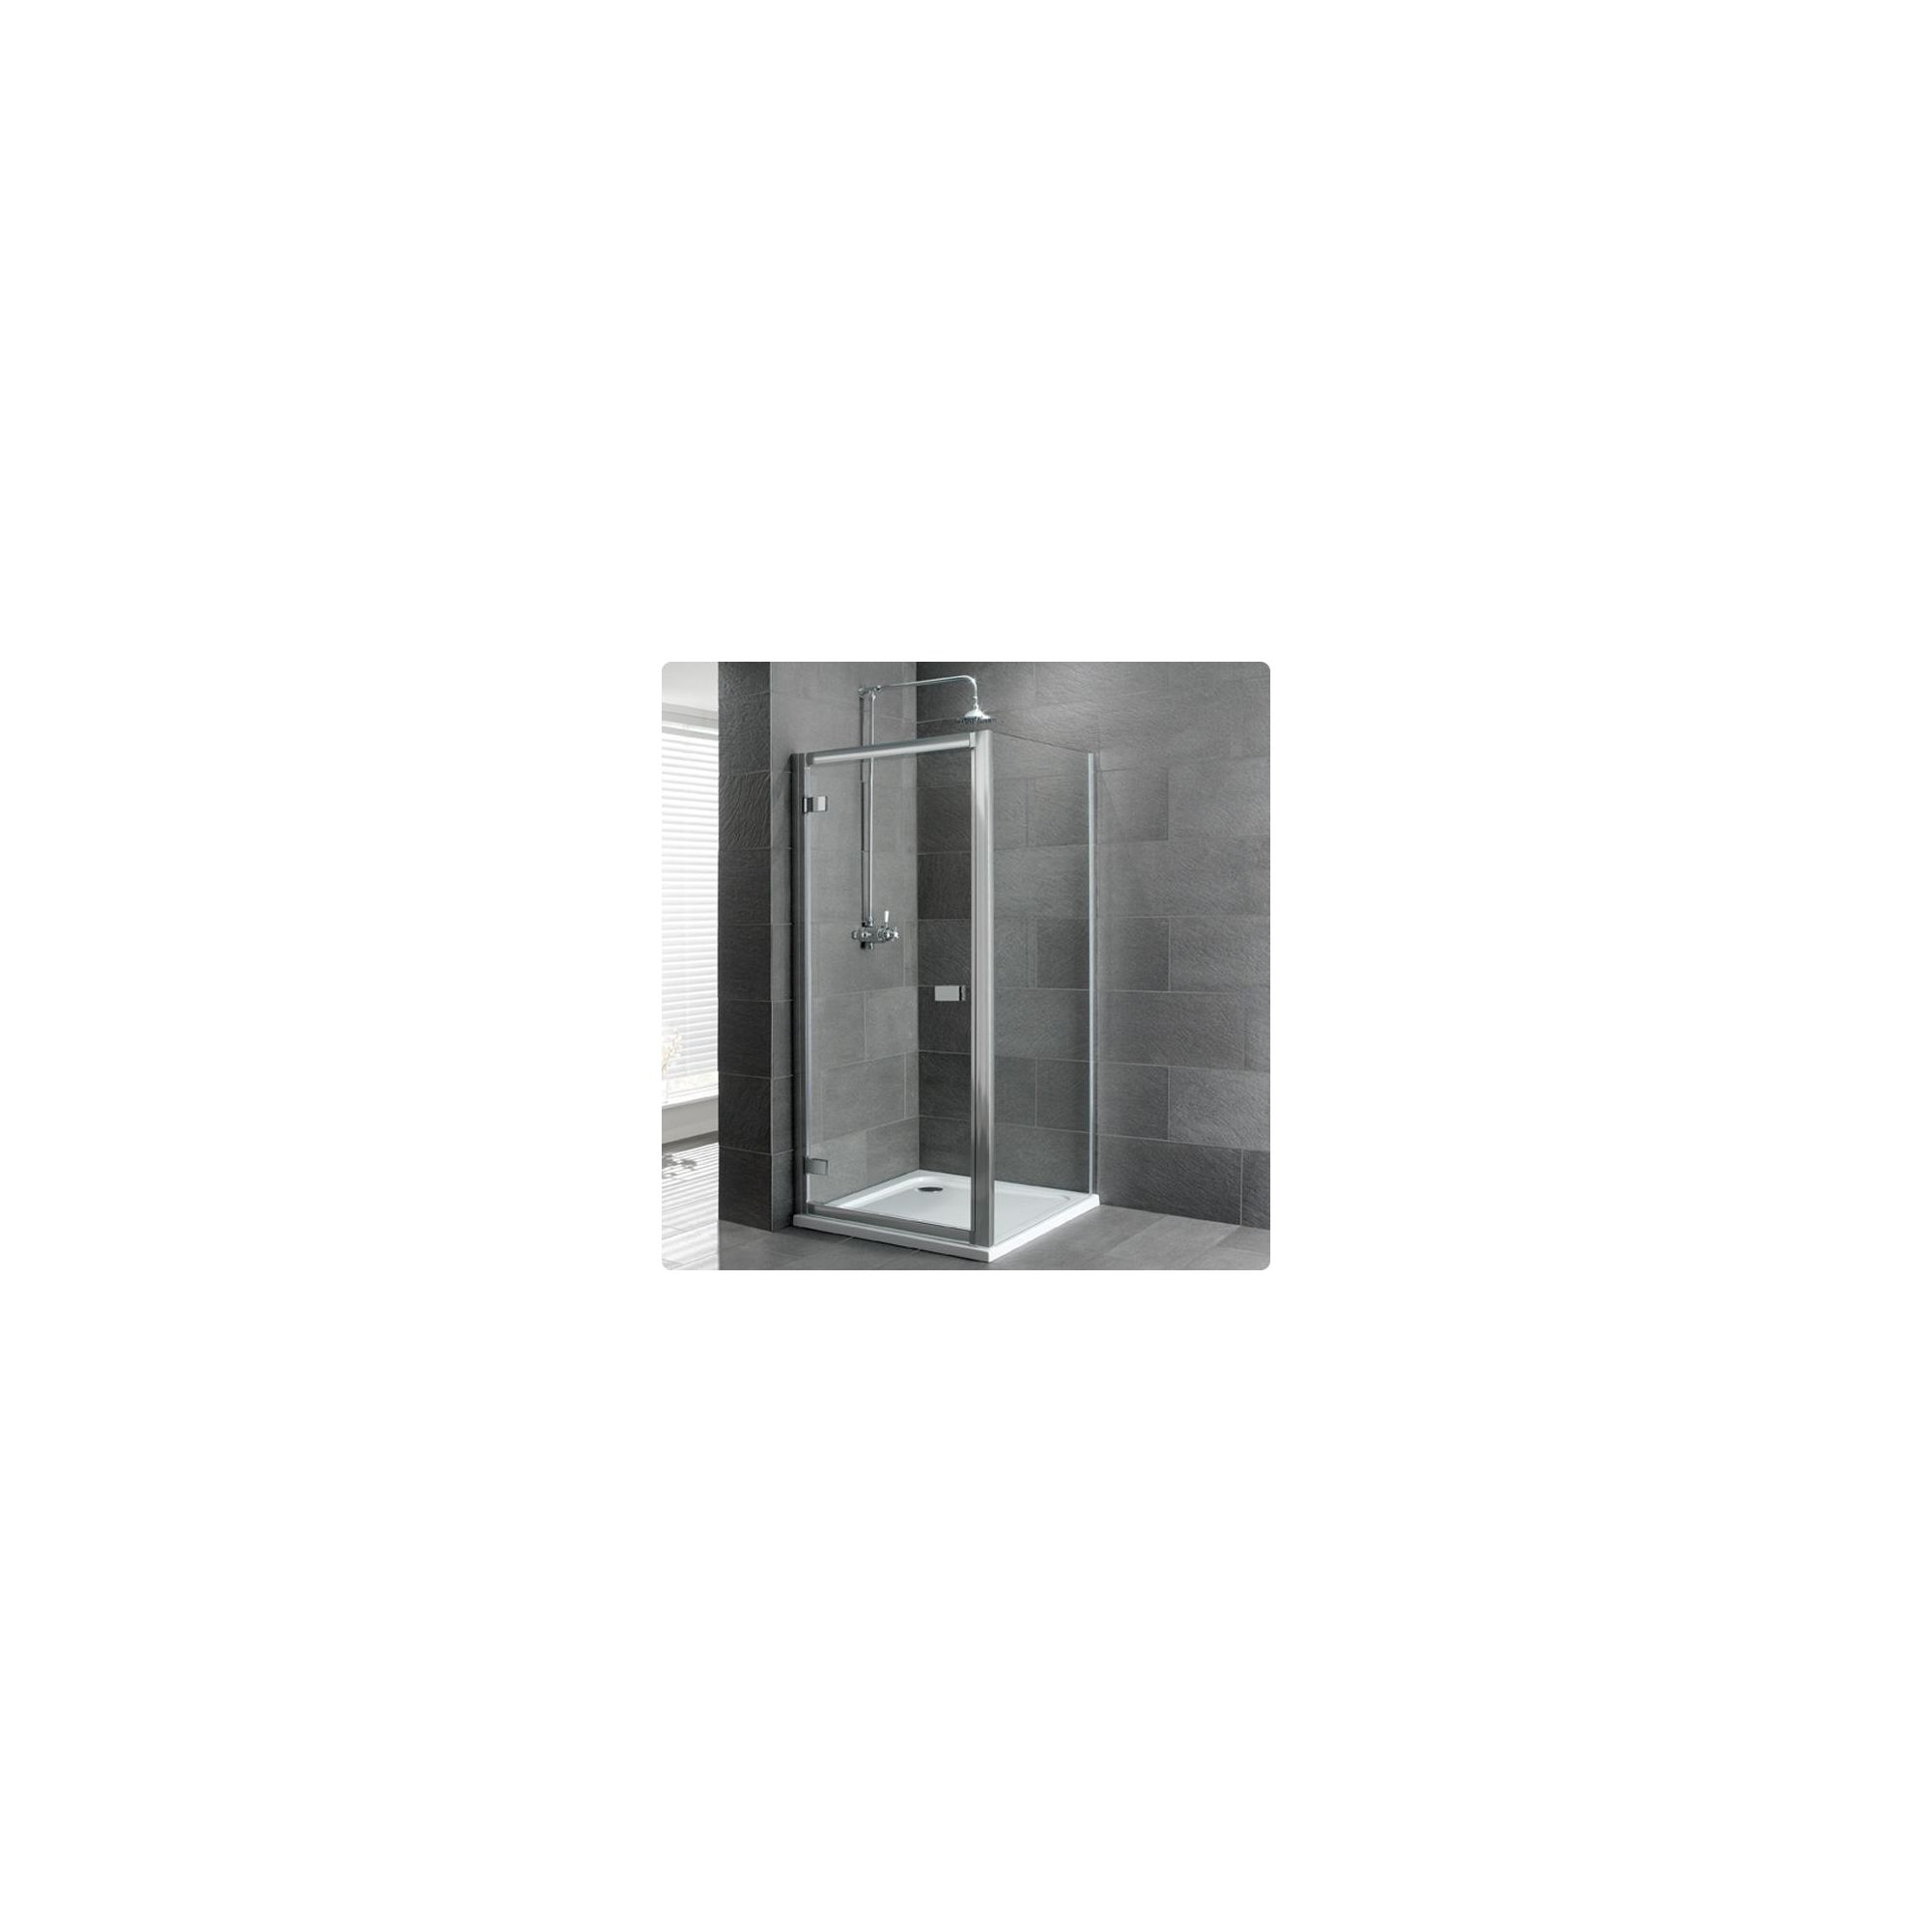 Duchy Select Silver Hinged Door Shower Enclosure, 760mm x 760mm, Standard Tray, 6mm Glass at Tesco Direct